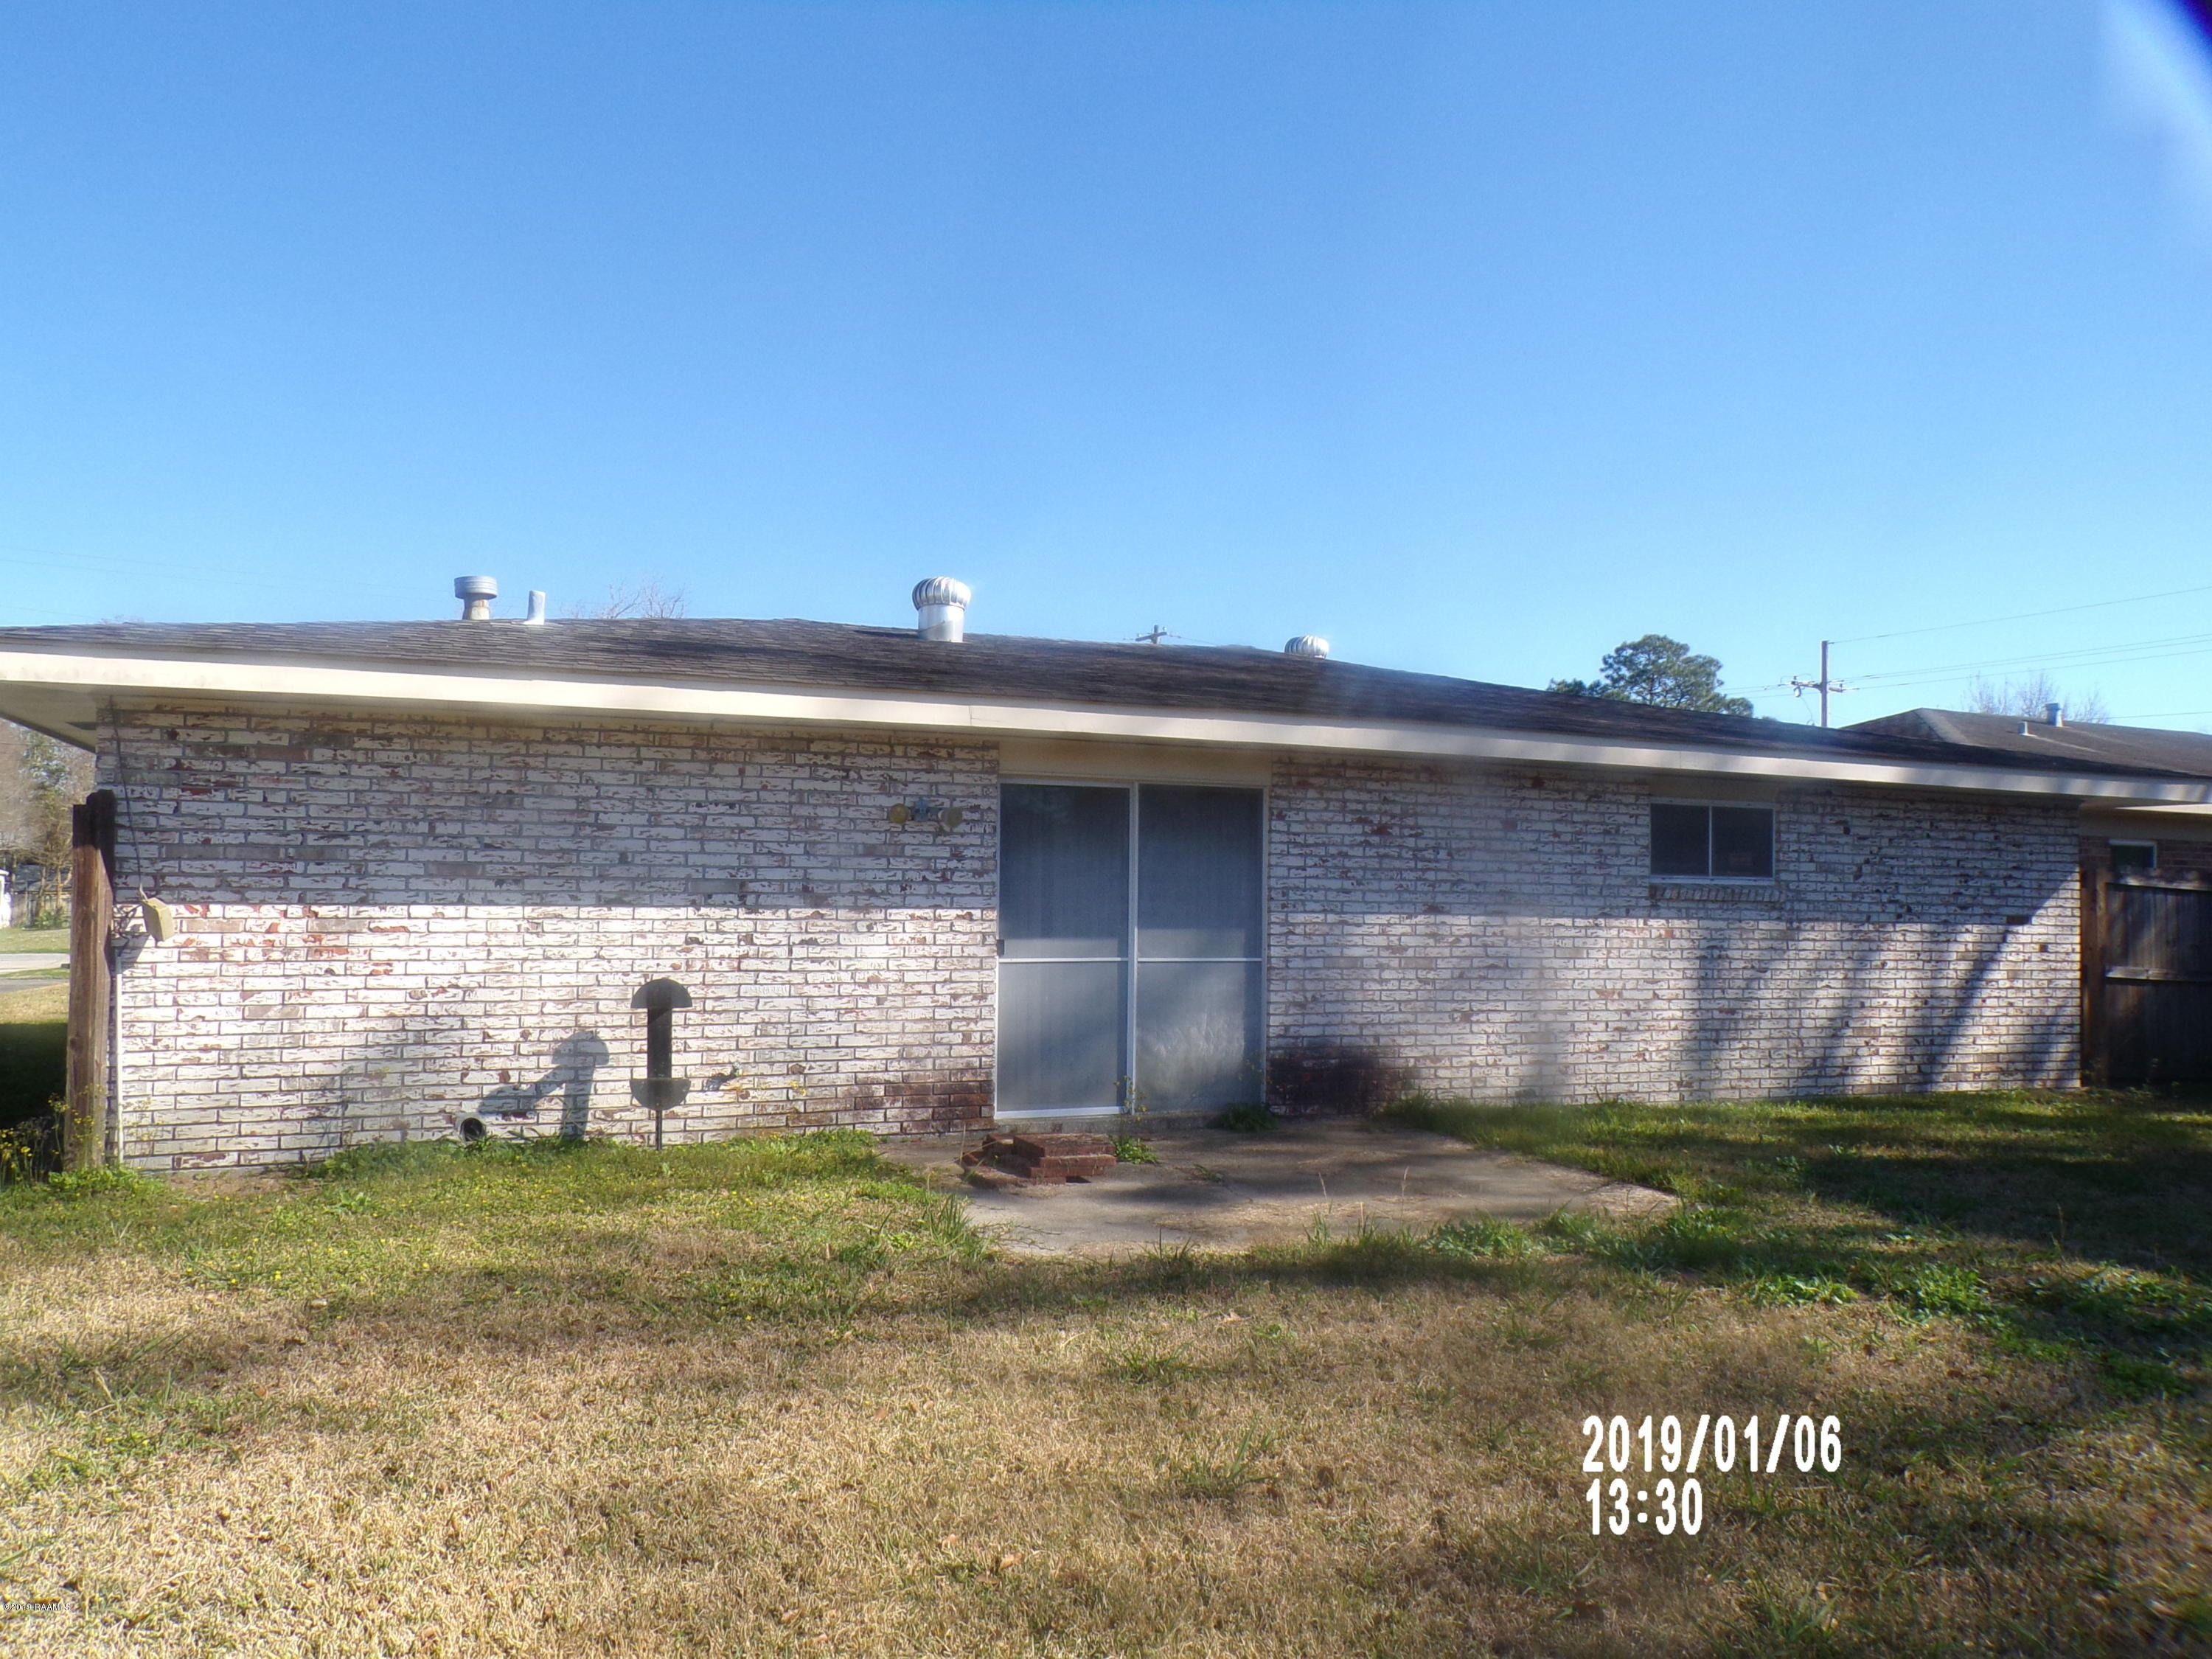 501 Pecan Drive, Franklin, LA 70538 Photo #17